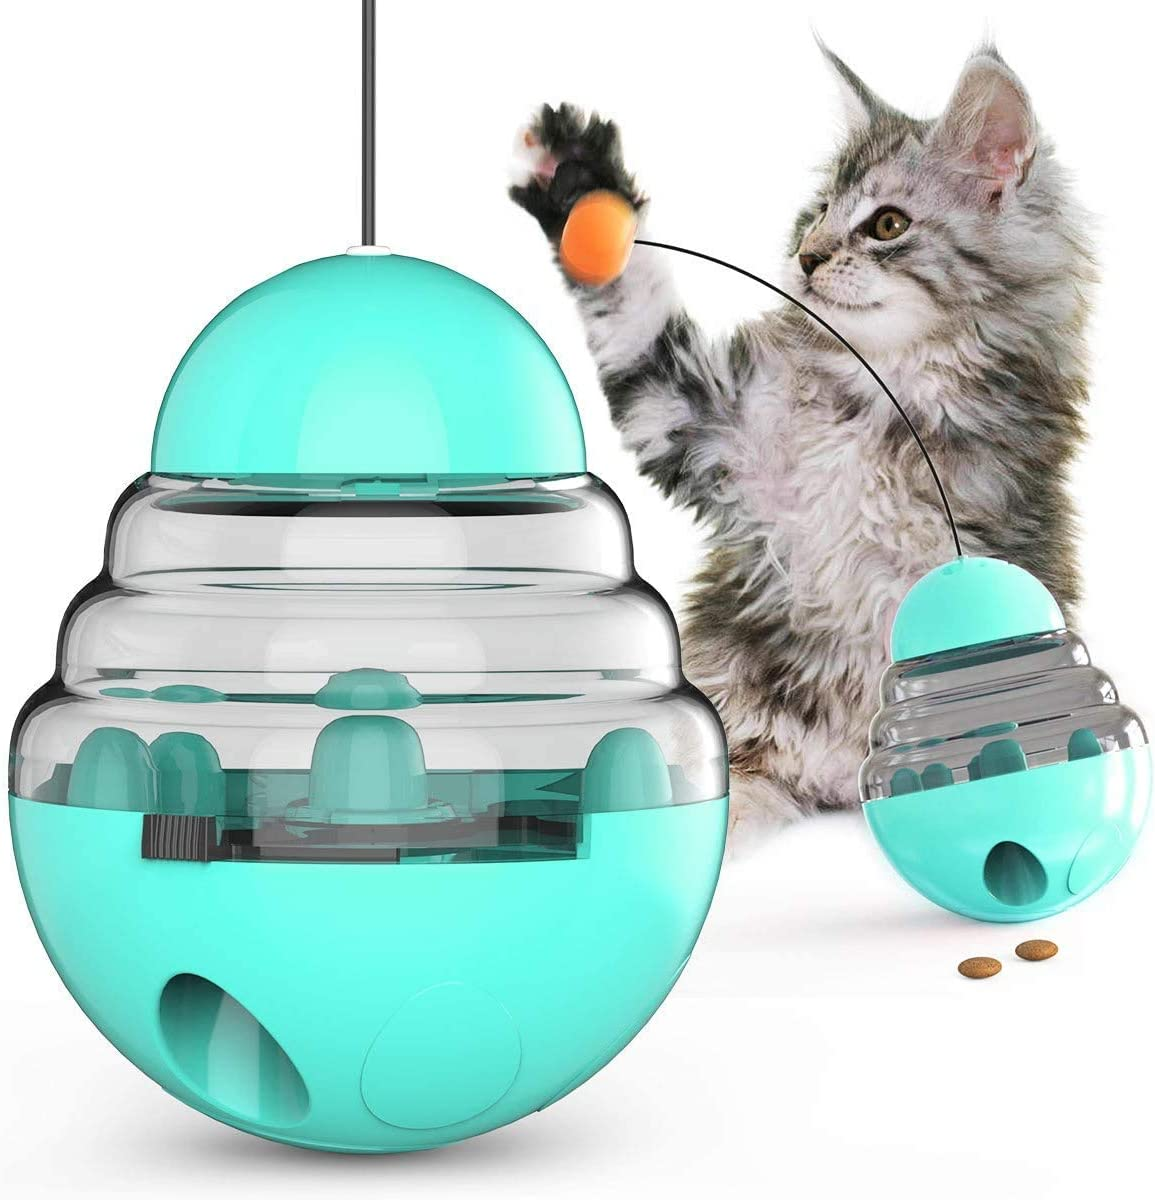 Cat Toy Leakage Food Ball Toys Cat Tumbler Toy Ball Kitten Roly-Poly Treat Toys, Kitty Slow Food Dispensing Puzzle Toy